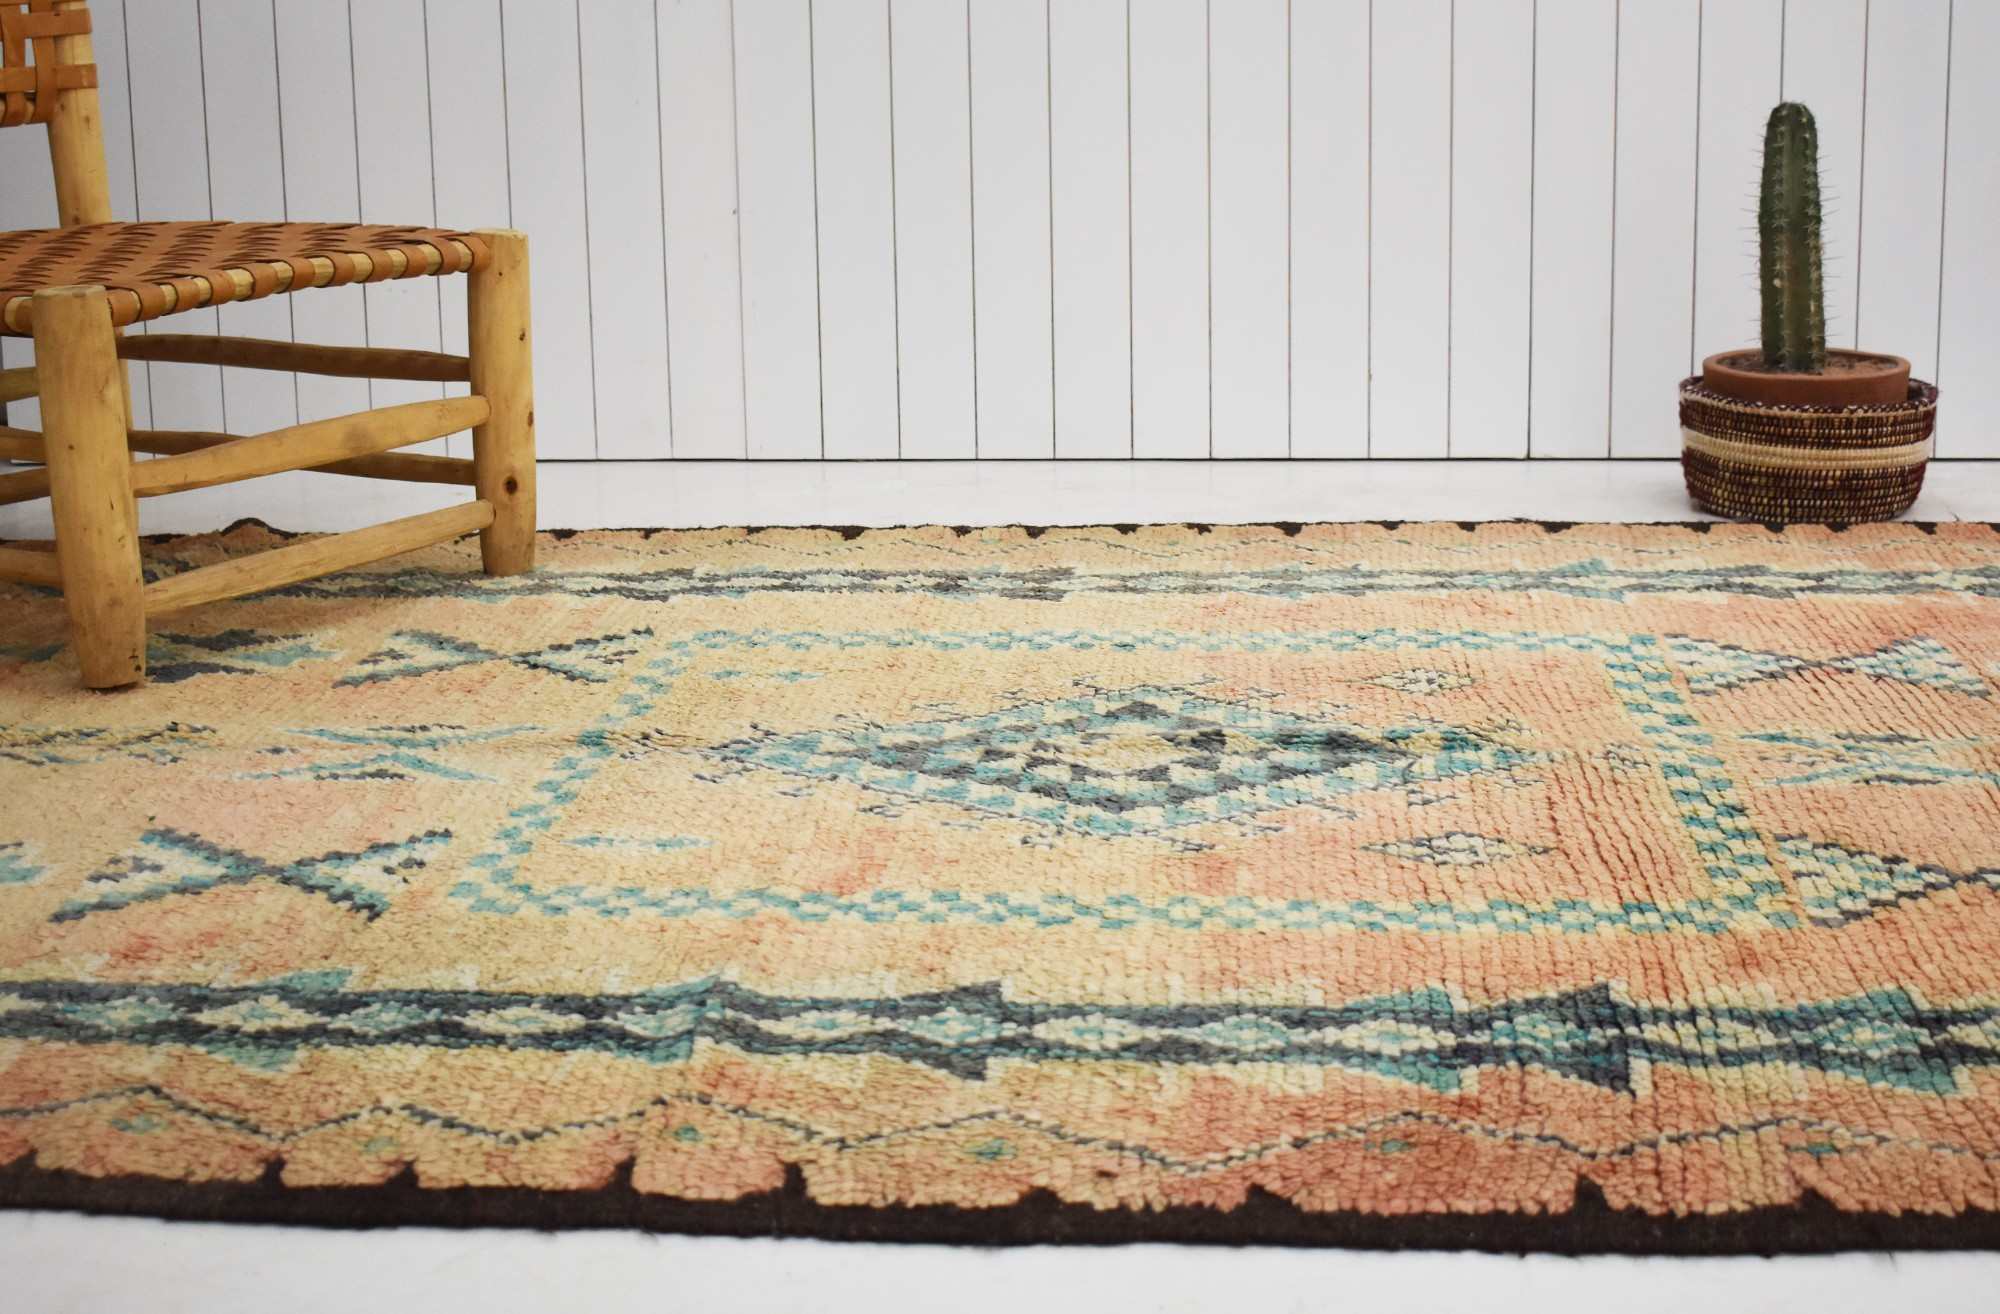 Vintage Berber rug in old pink and khaki green